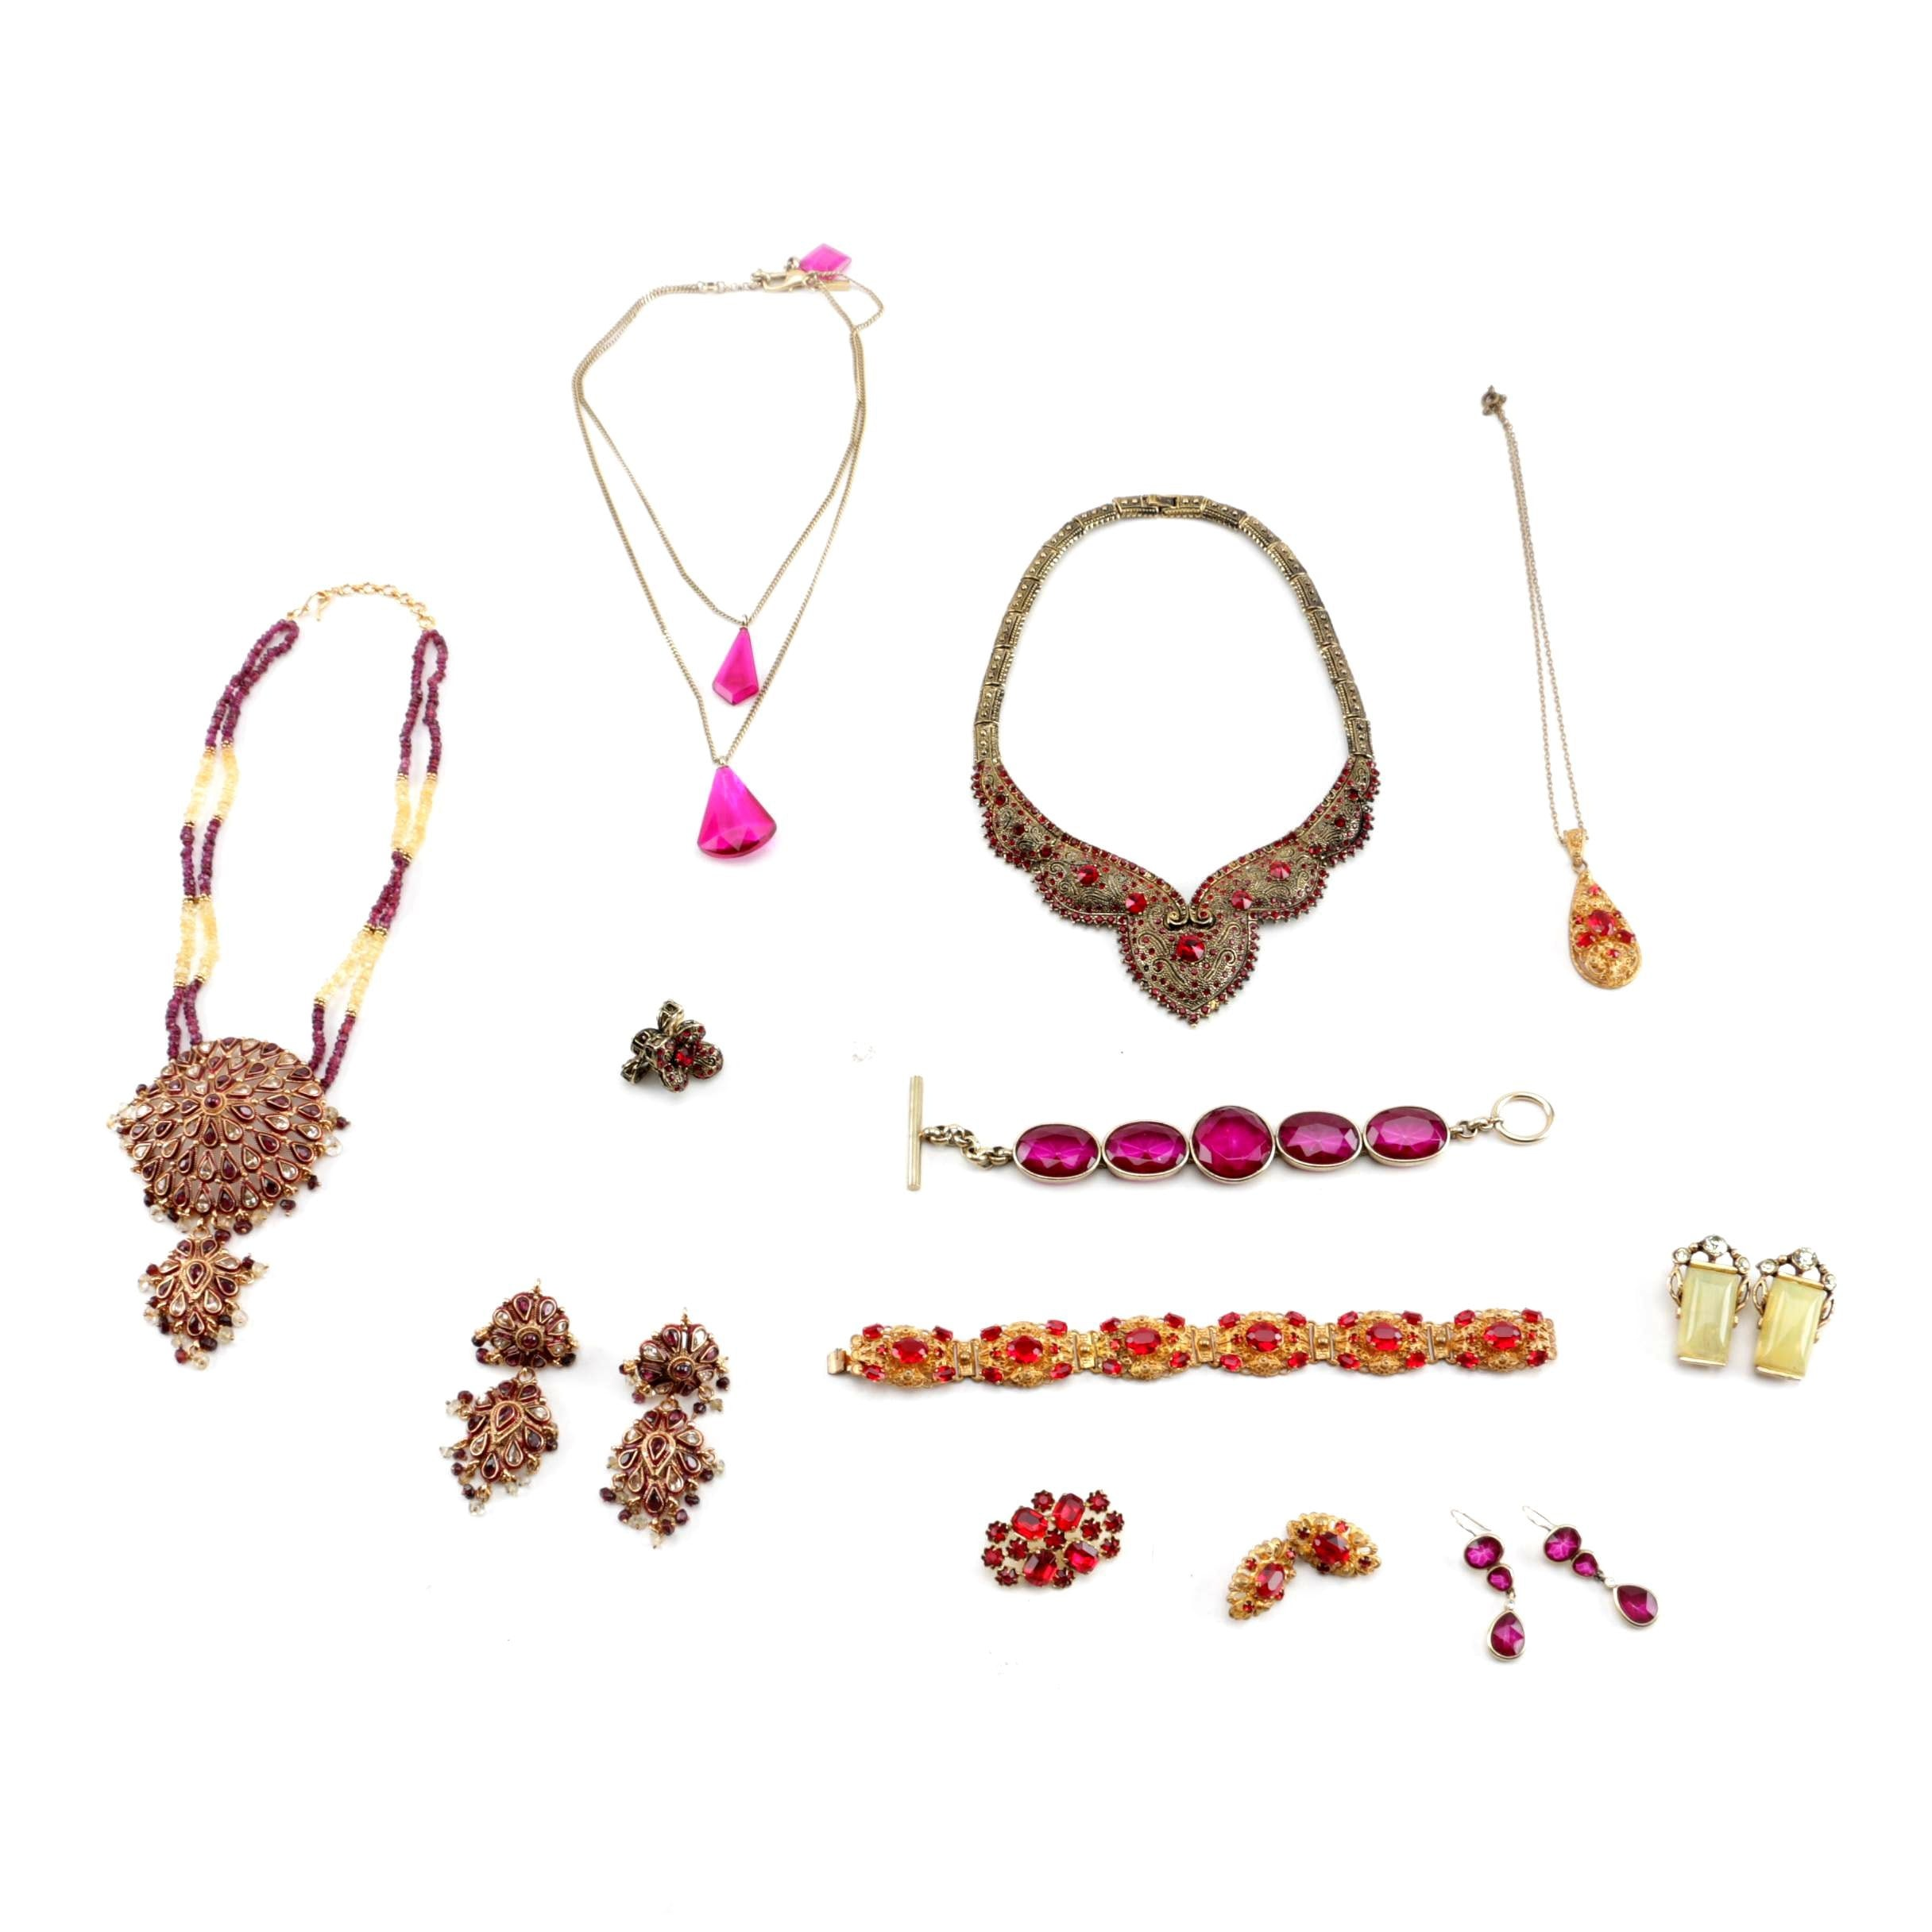 Costume Jewelry Including Demi Parure Sets with Gemstones